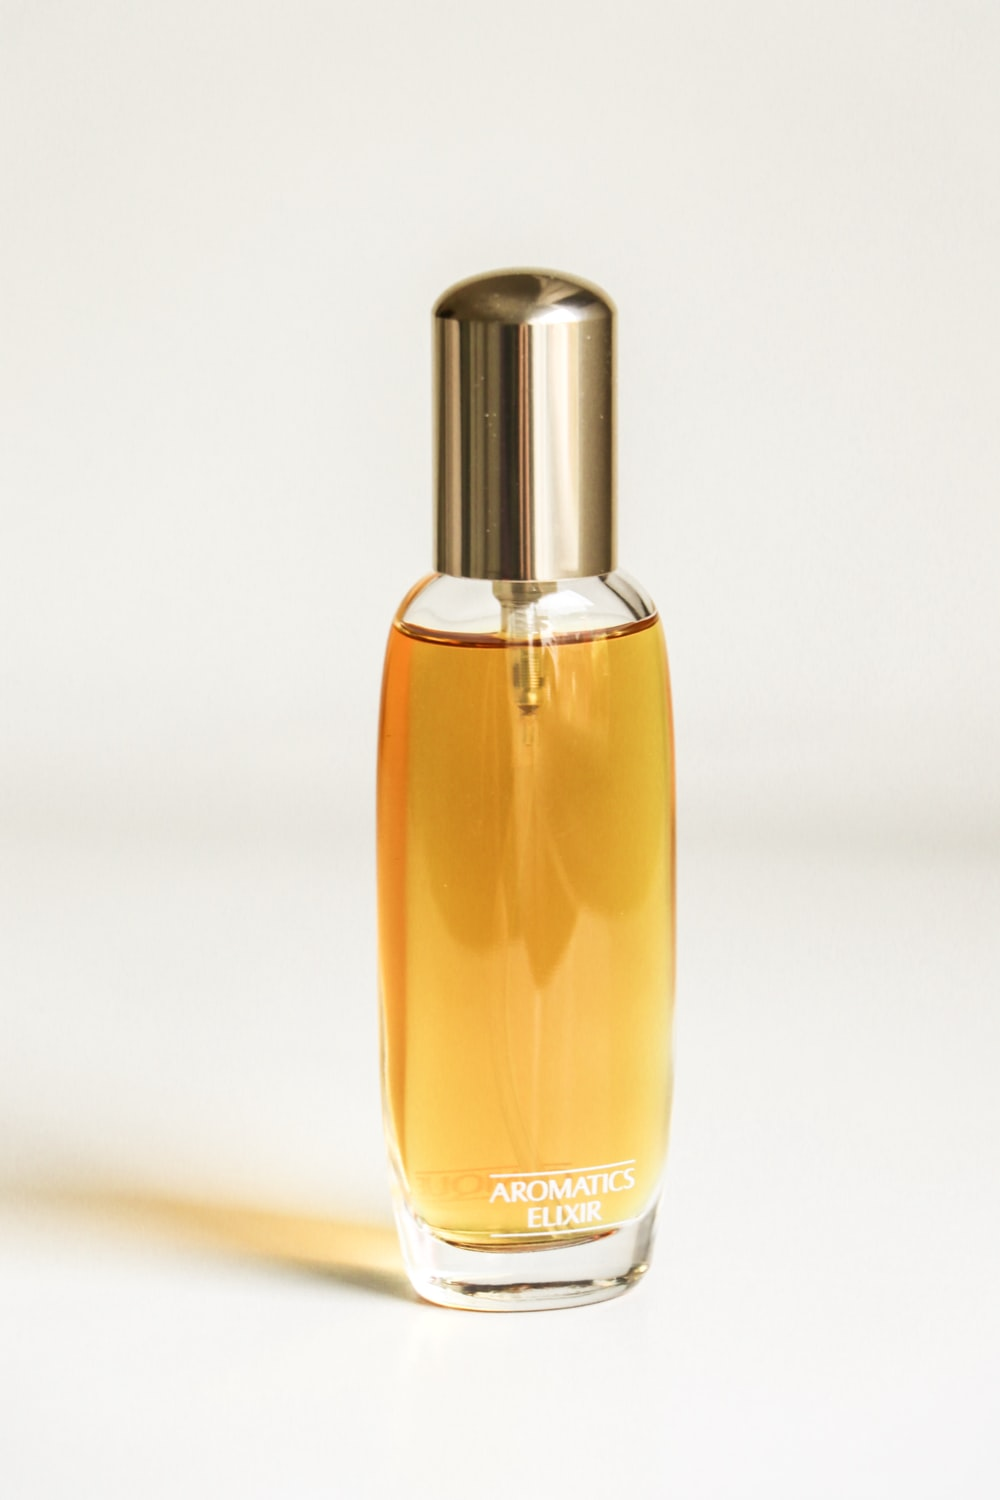 yellow and silver perfume bottle